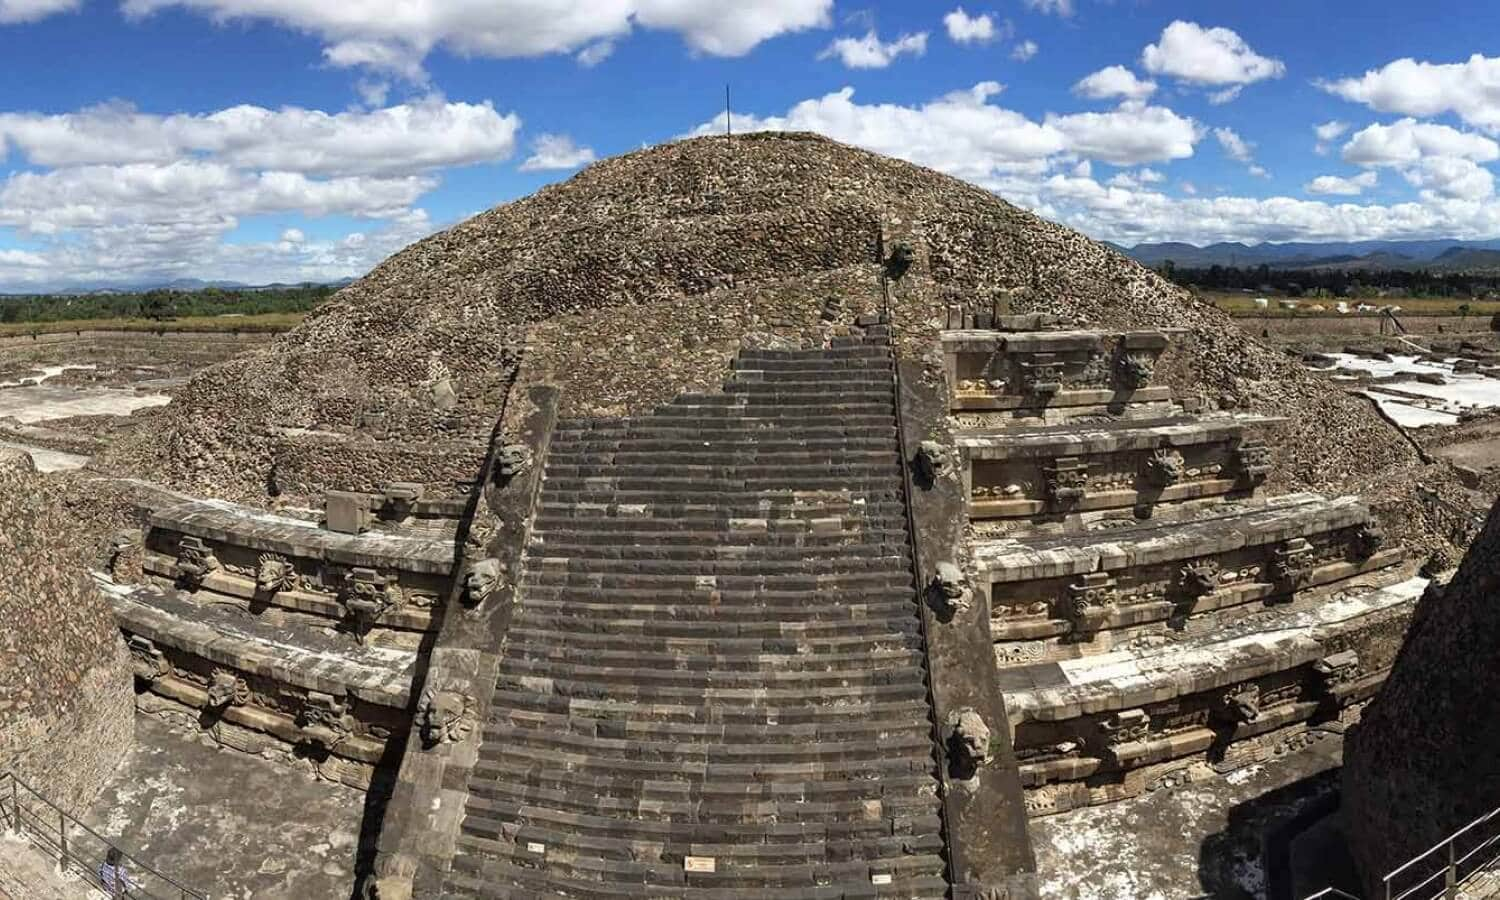 Day 2: Trek to the Pyramid of Hell